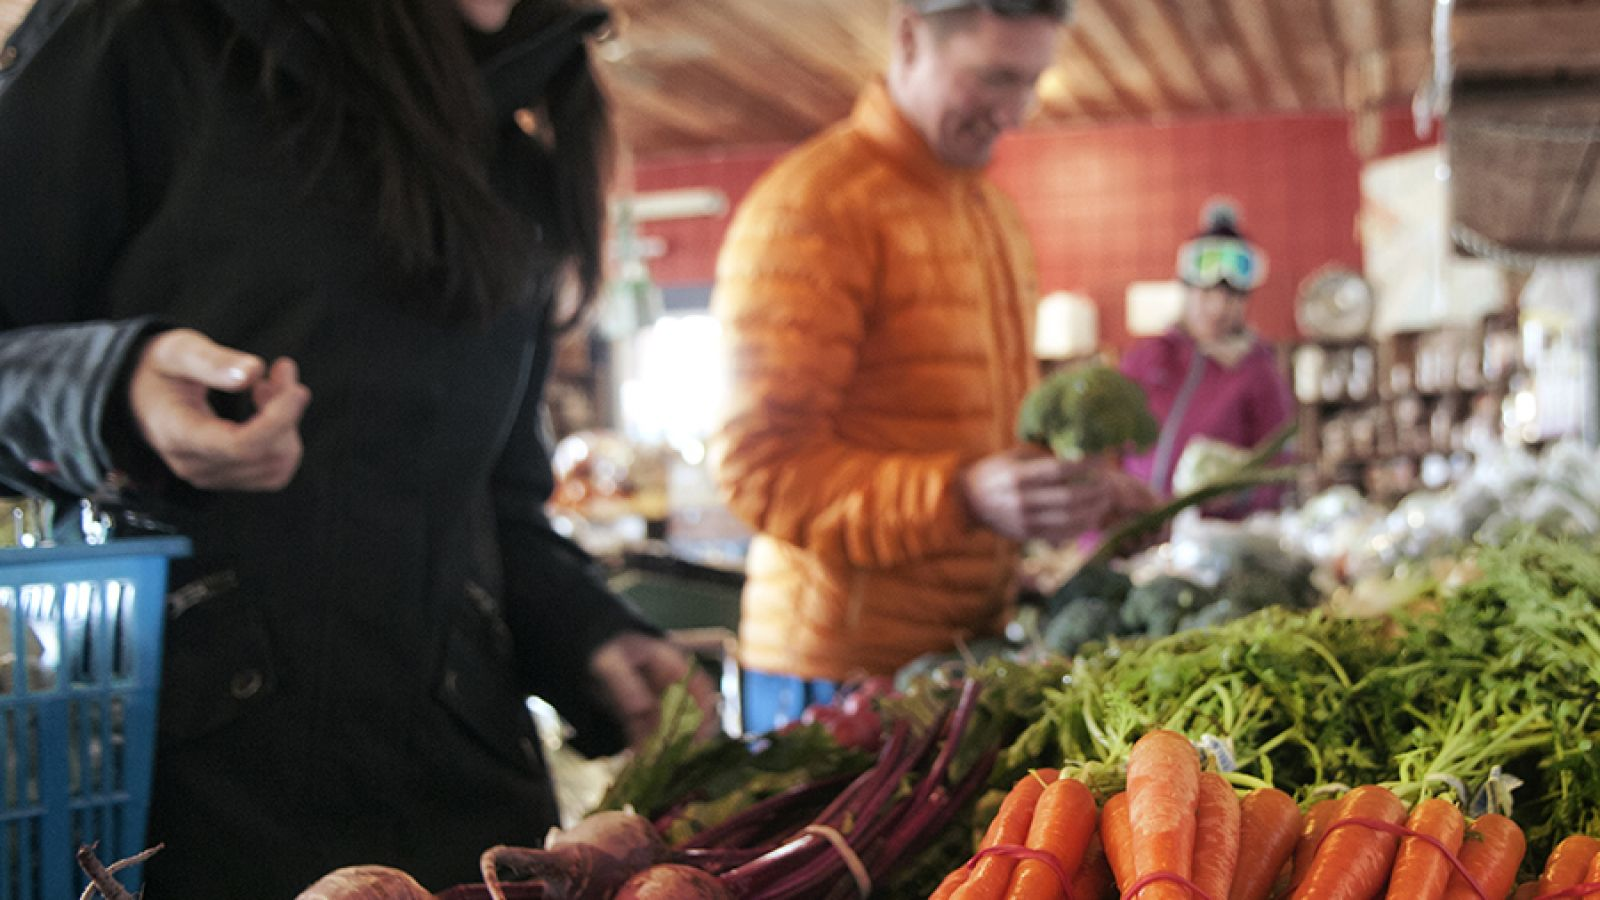 Farmers Markets offer wonderful fresh produce.